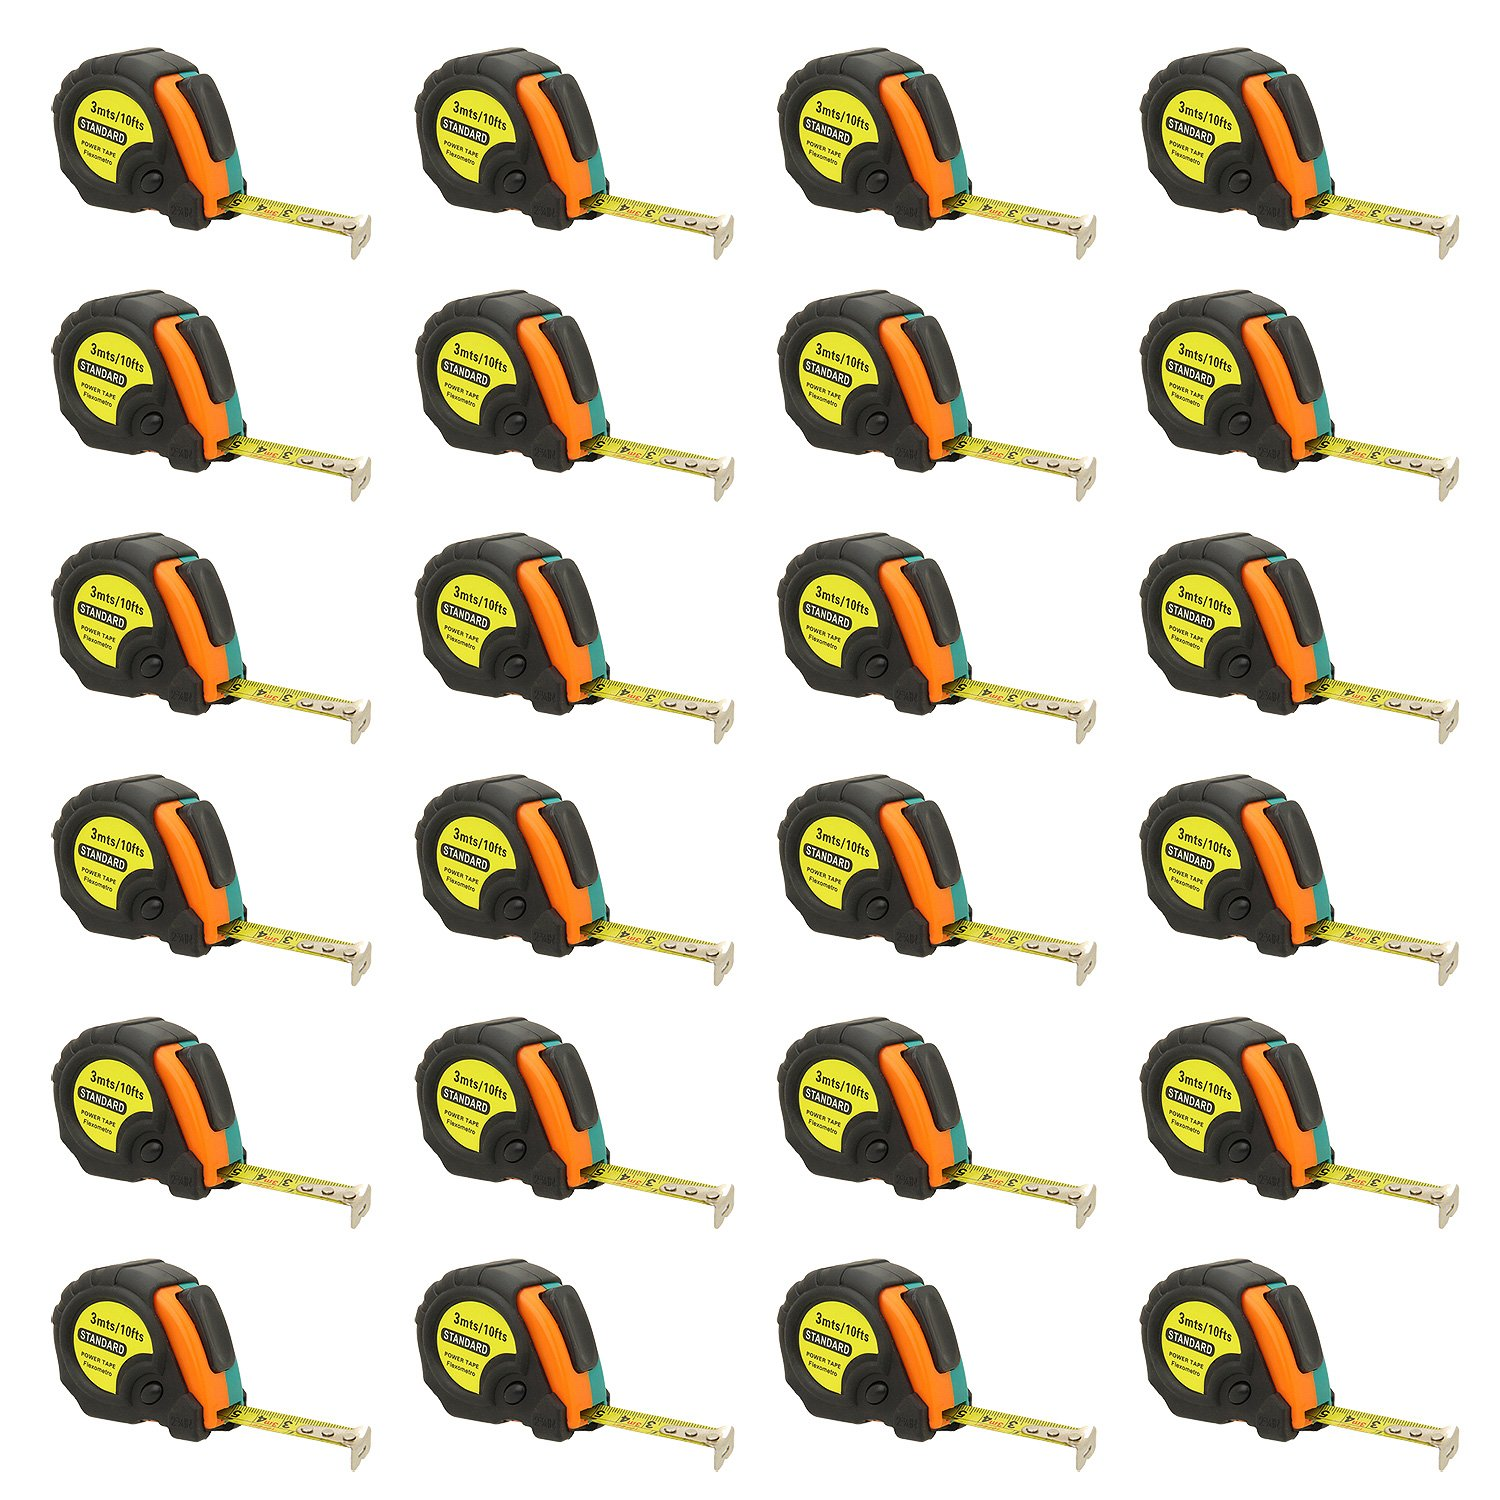 10ft Power Tape Measure Auto Lock (10-Foot 24-Pack)